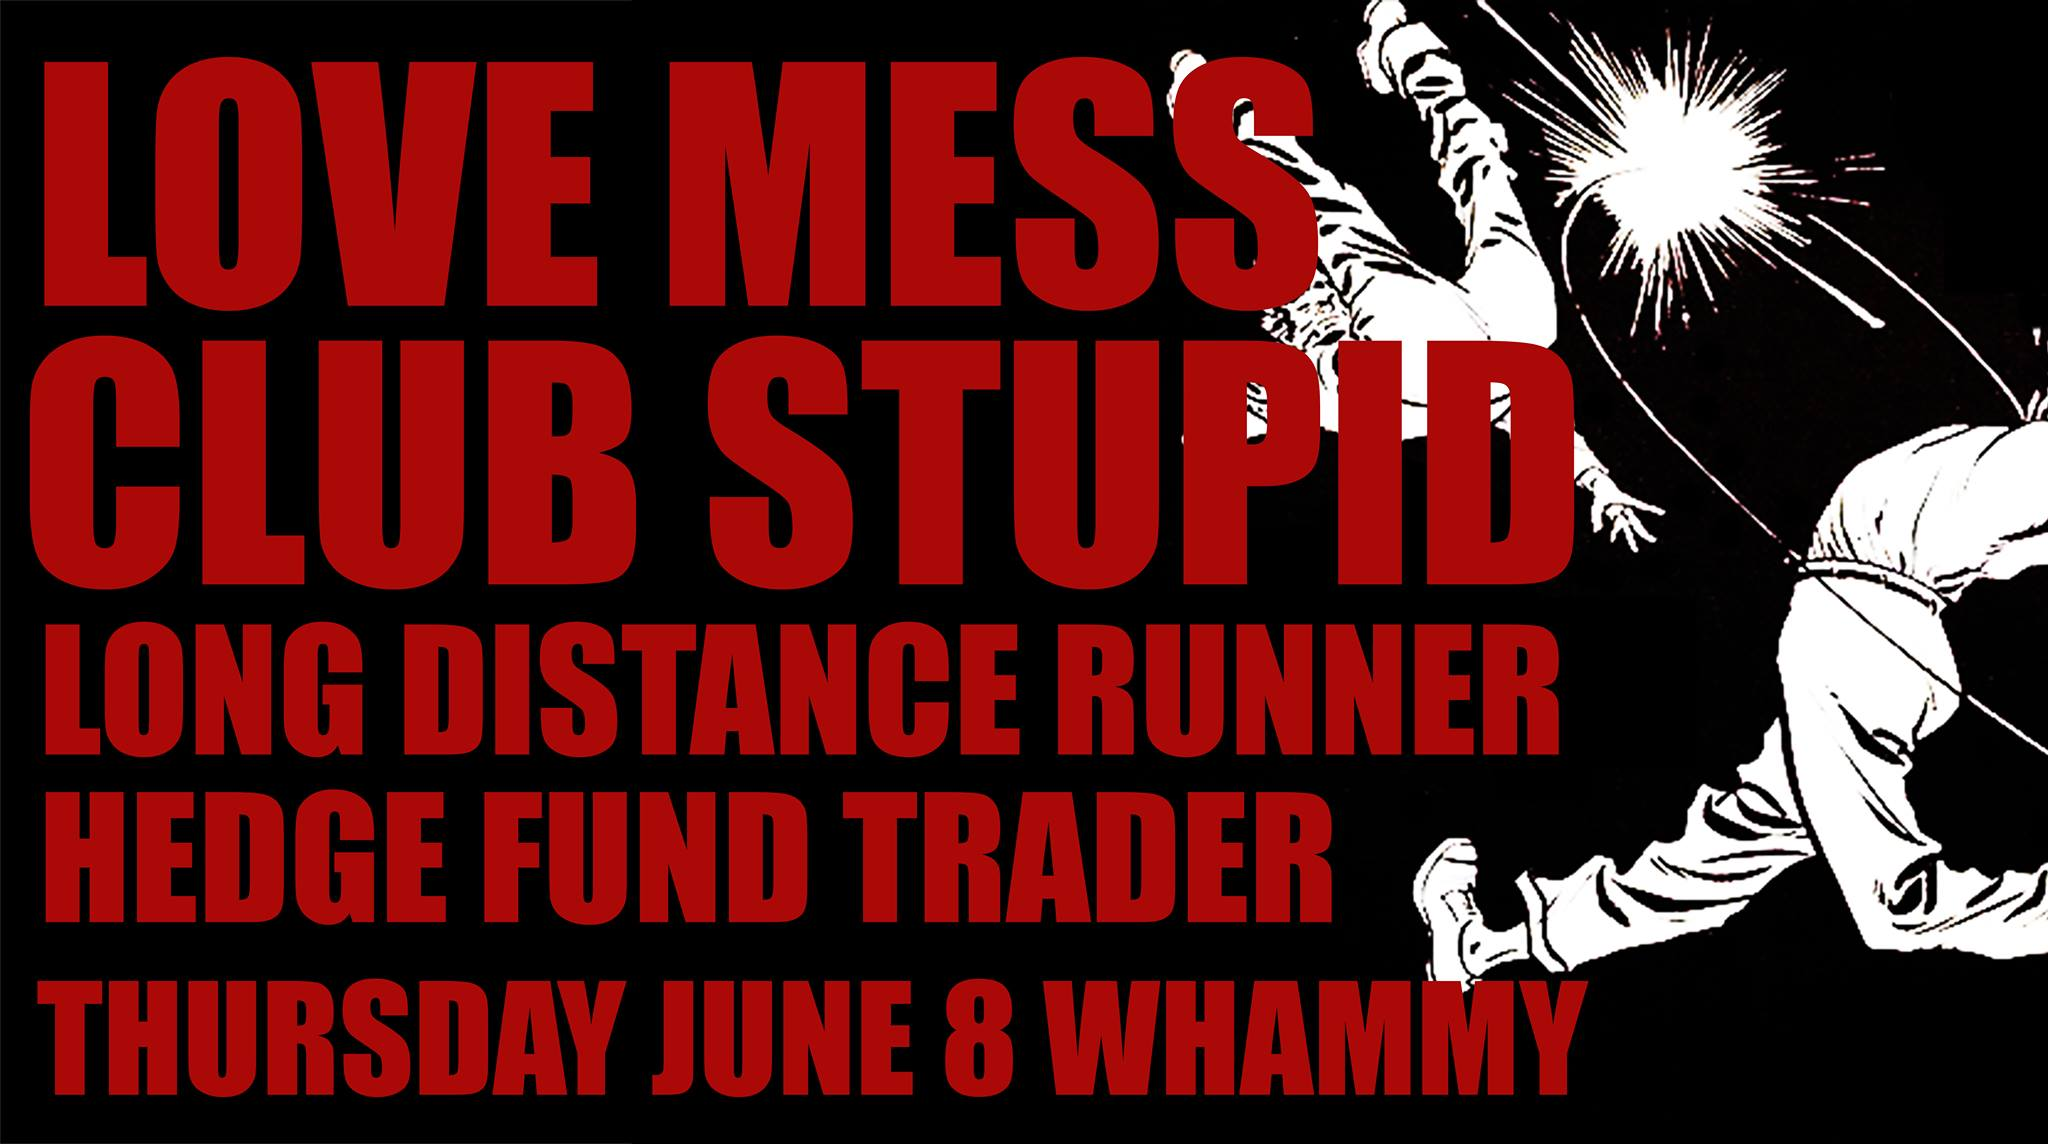 Love Mess, Hedge Fund Trader, Club Stupid, and Long Distance Runner